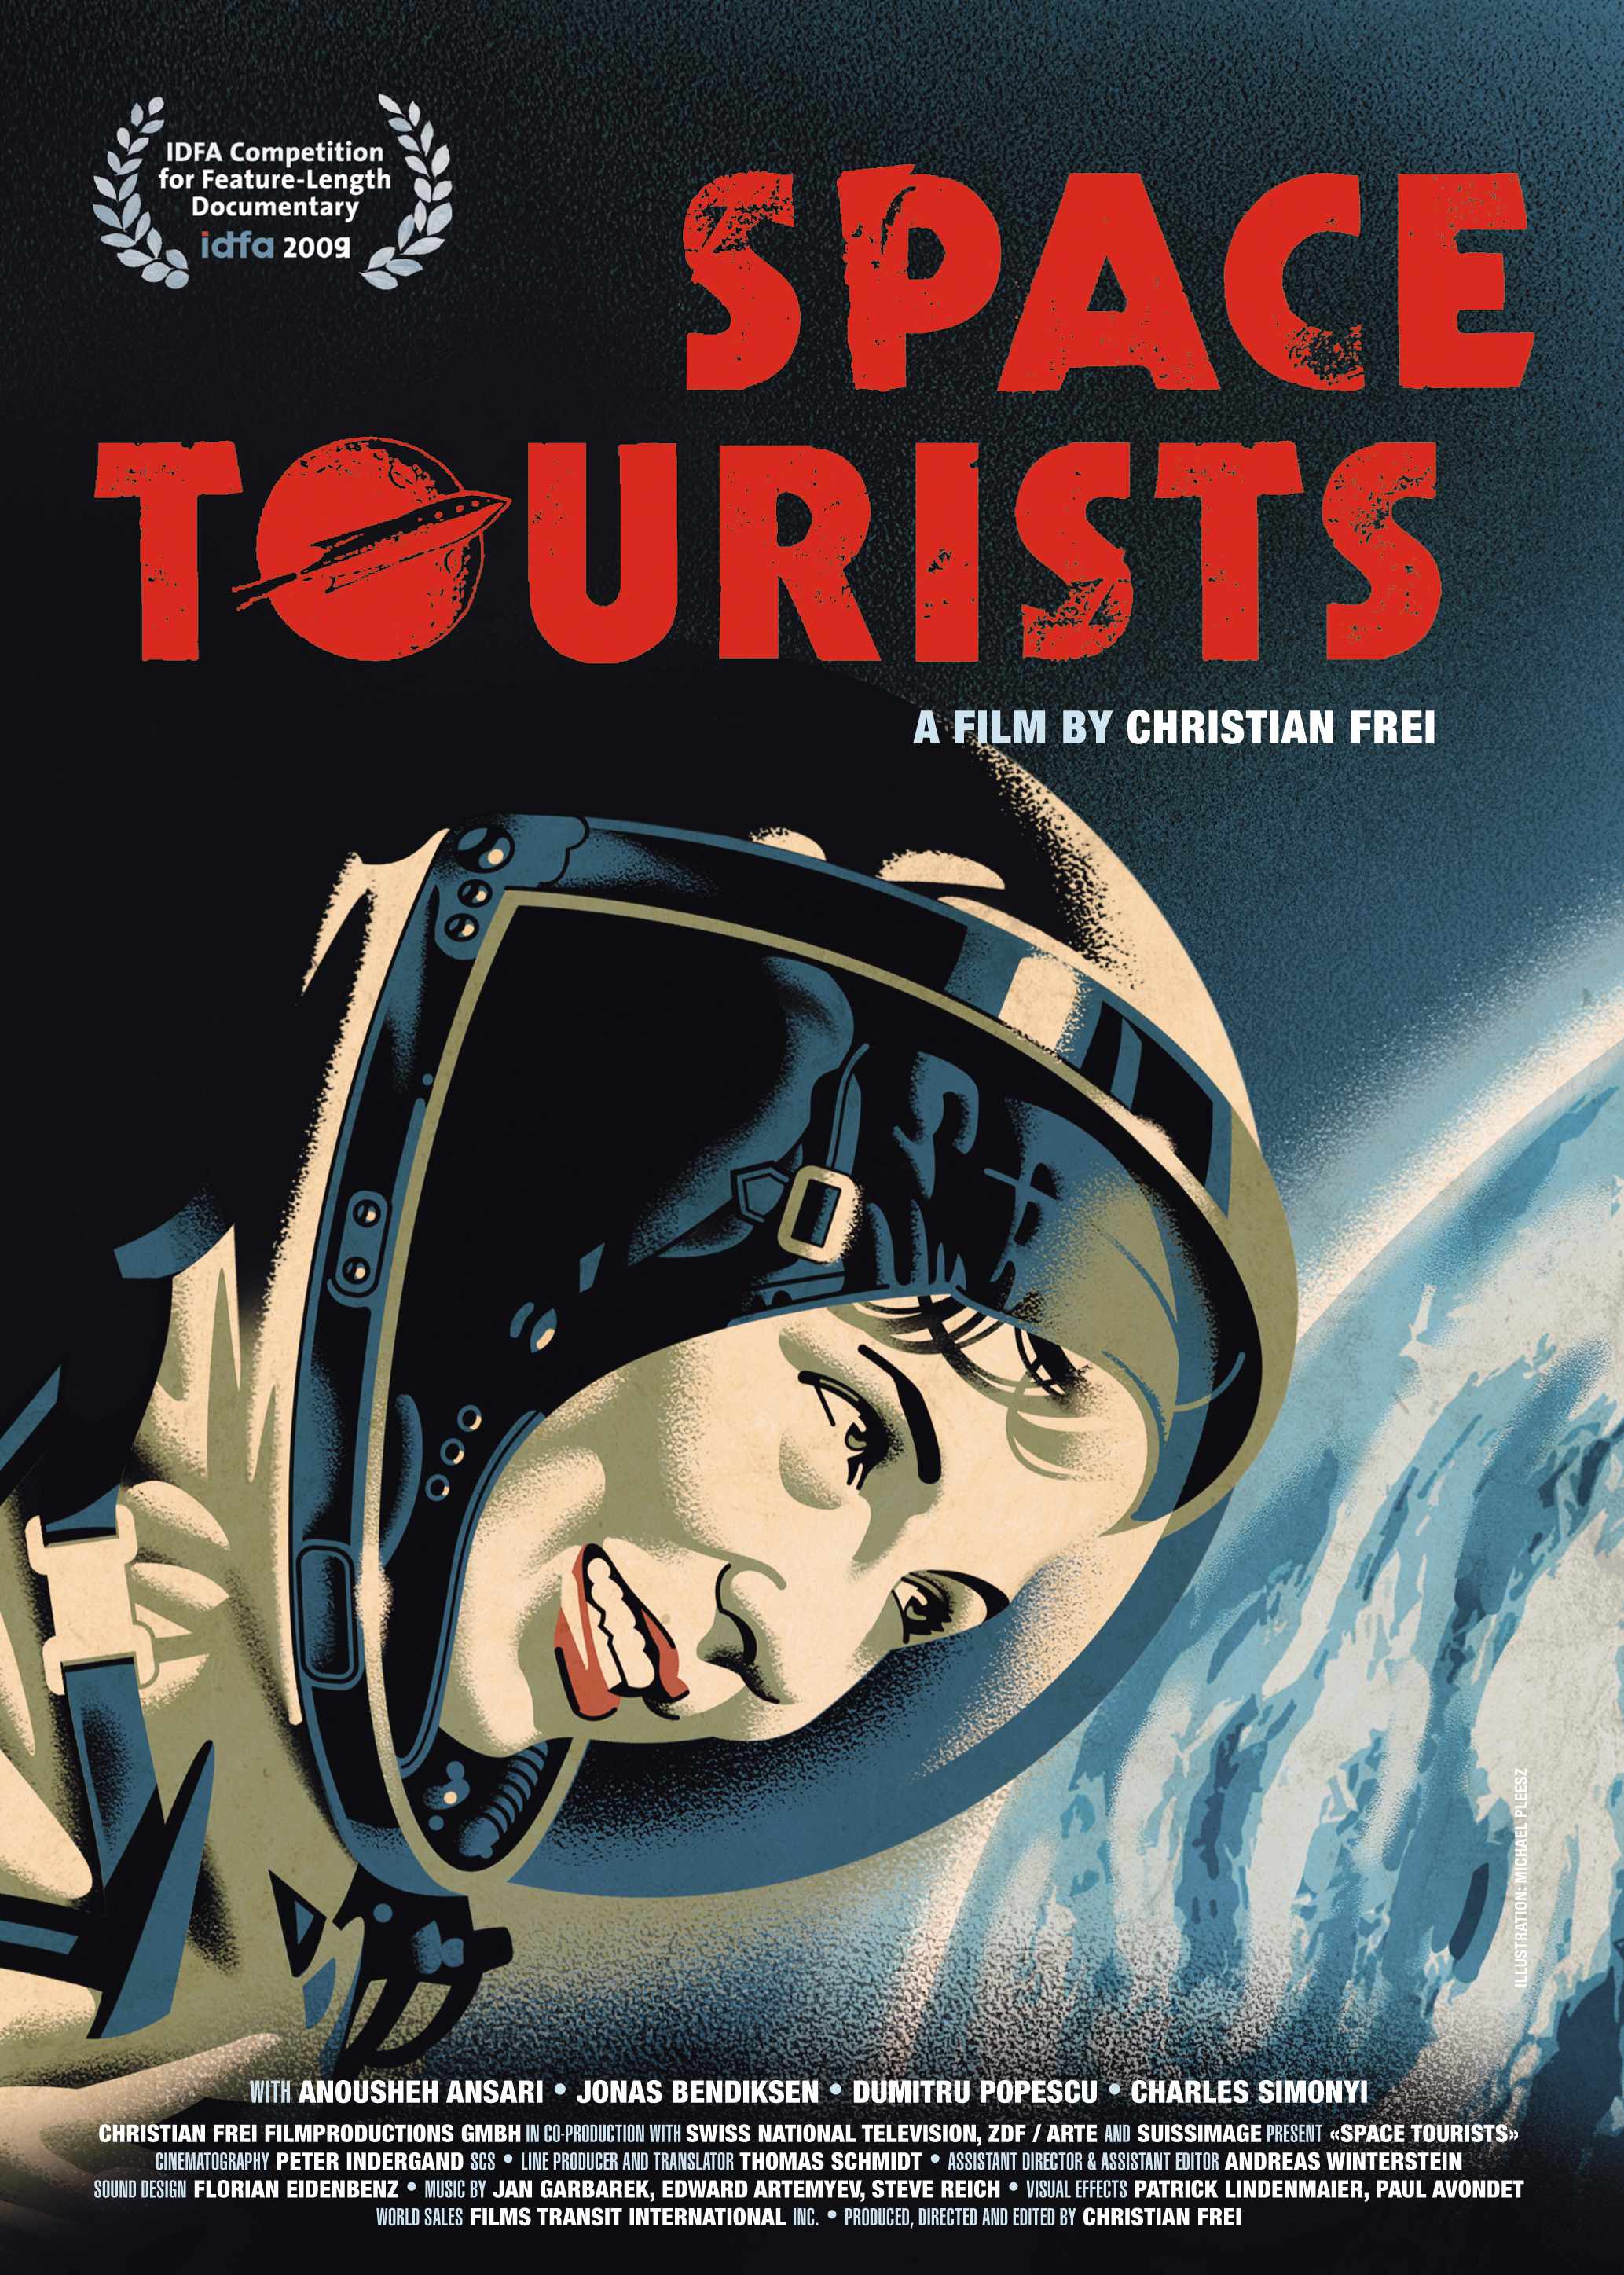 SPACE TOURISTS | A FILM BY CHRISTIAN FREI